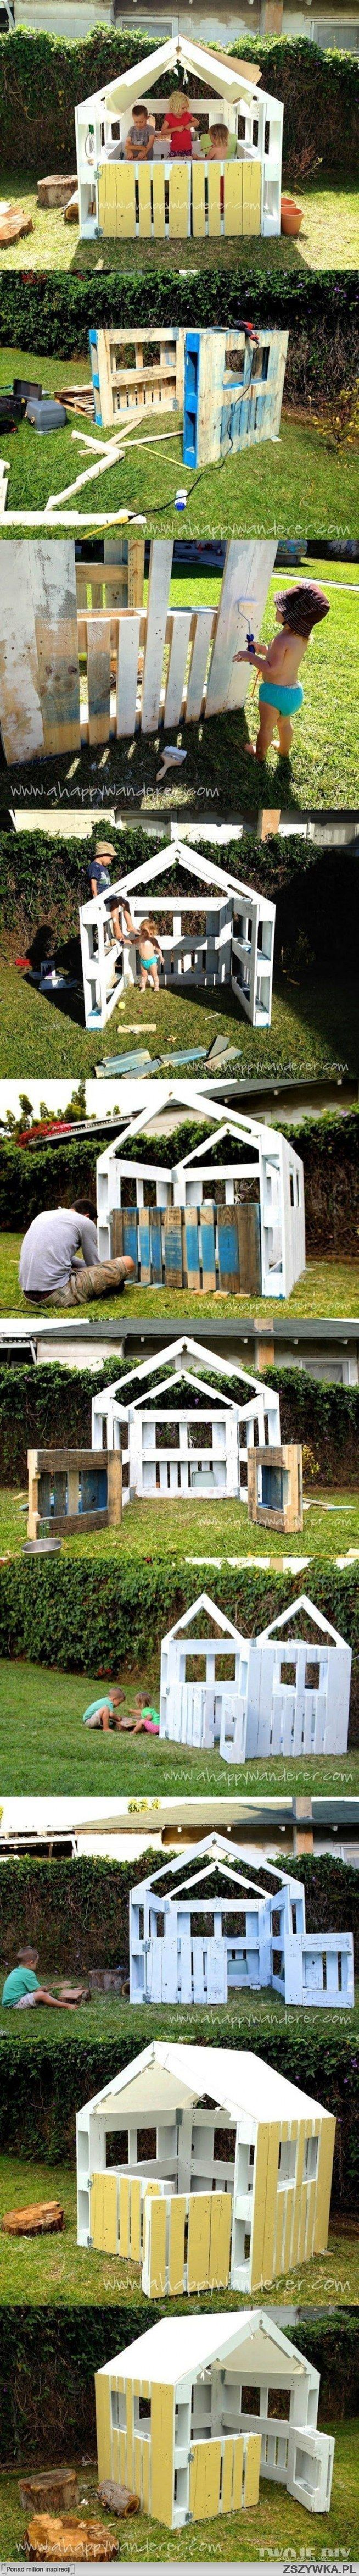 Now, If I can find one that is taller, Like an Adult version of this. I would close in the Roof and sides. My own little Getaway!!.